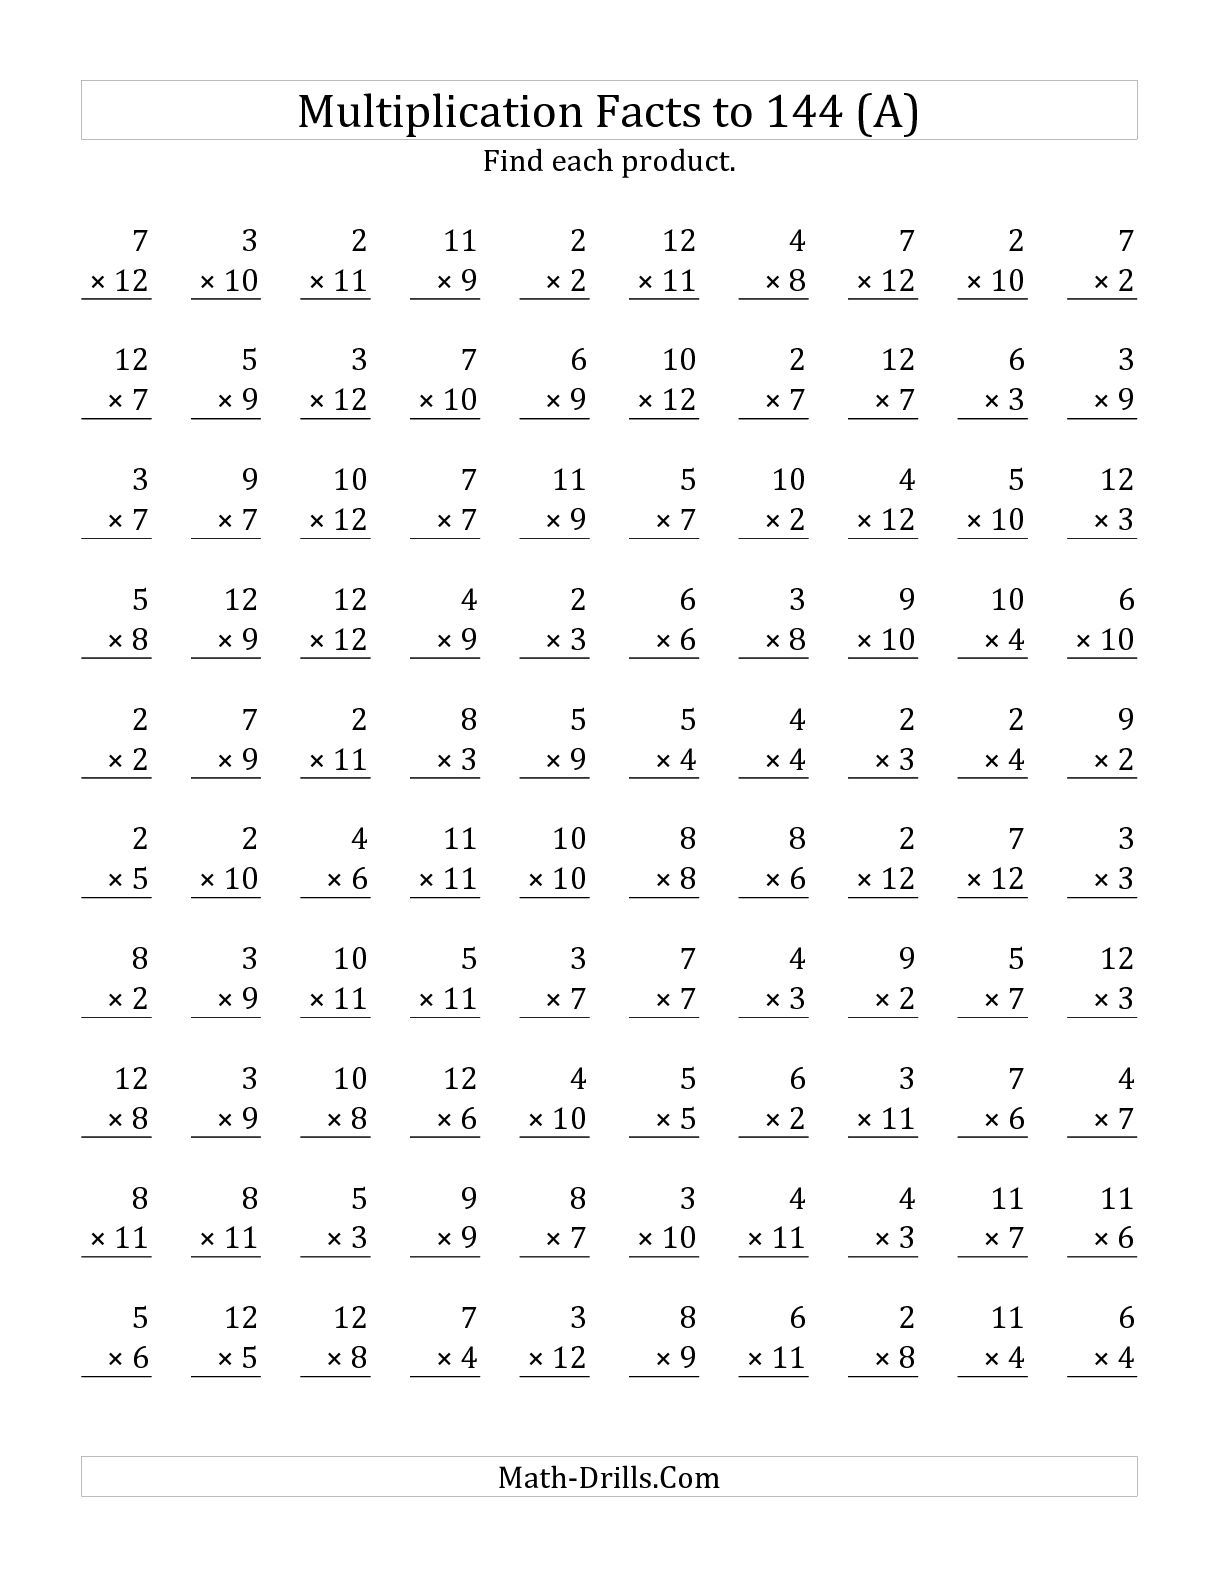 Preview Image Of The Multiplication Facts To 144 No Zeros